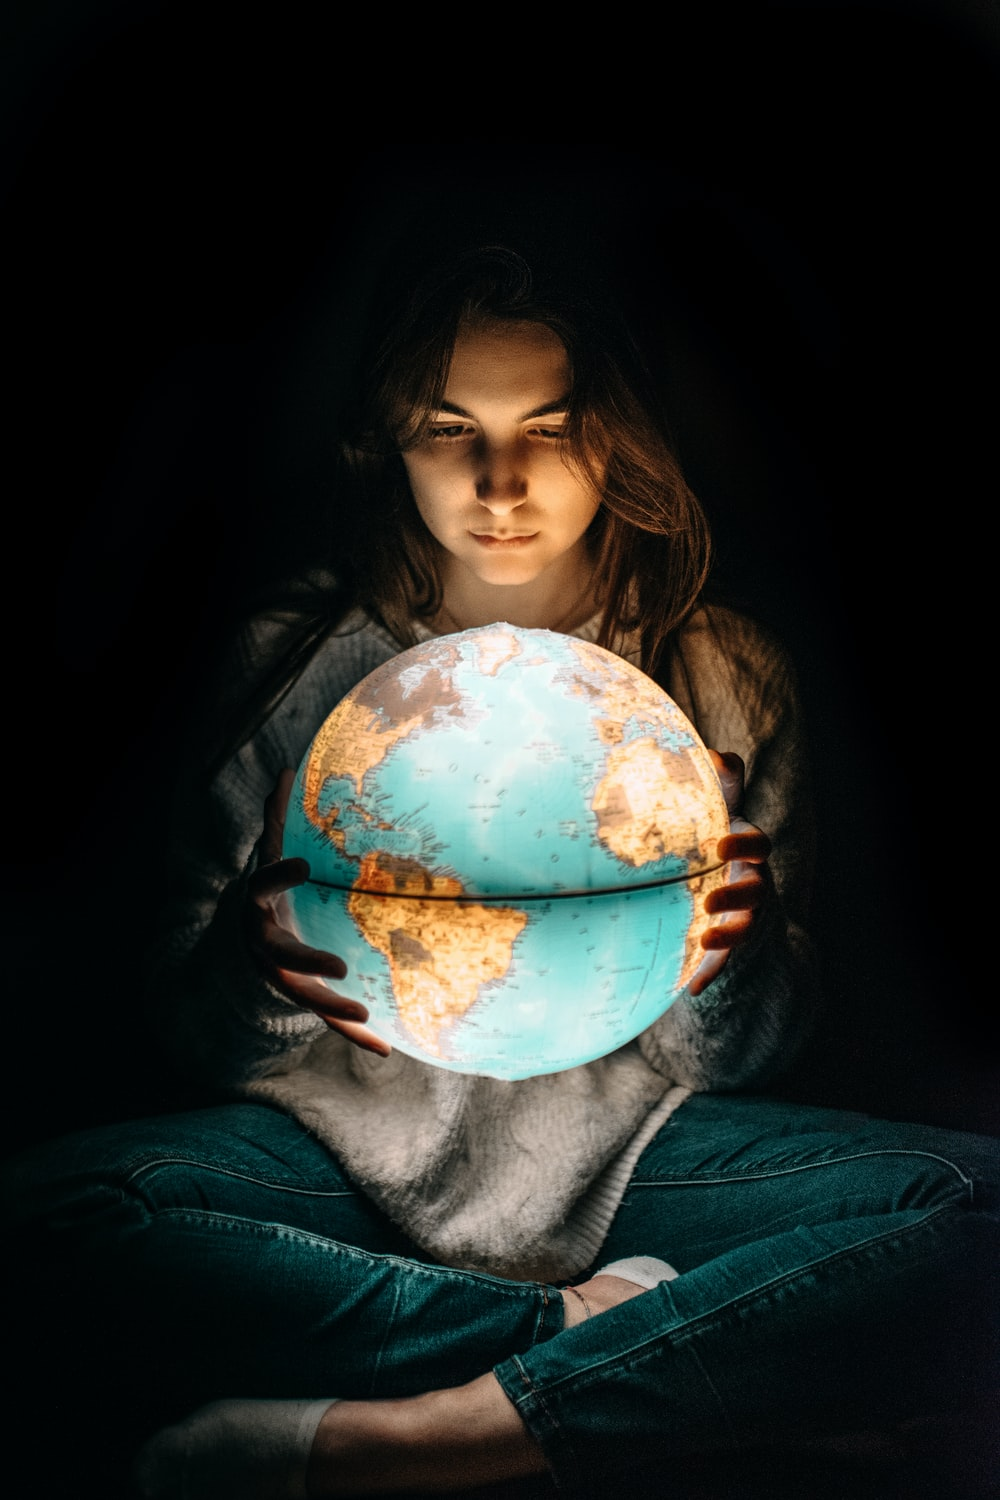 woman holding glowing earth globe